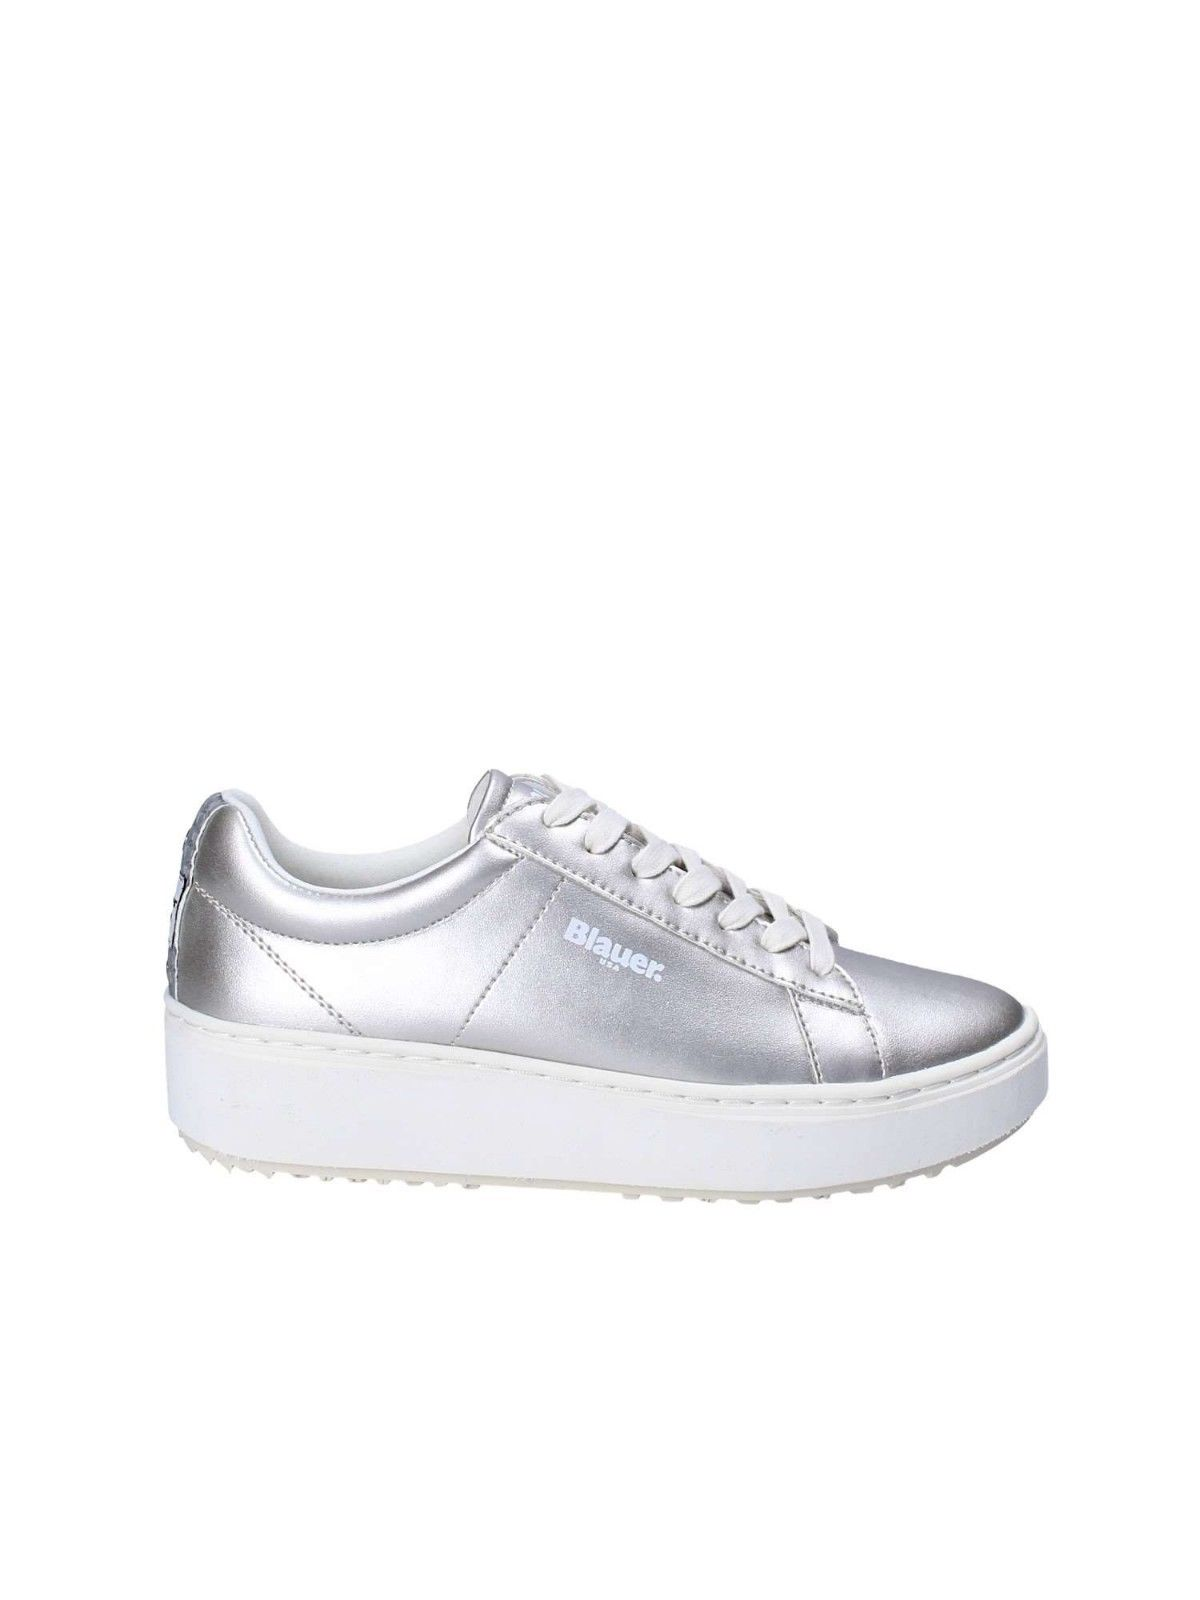 SCARPE SNEAKERS CASUAL DONNA BLAUER ORIGINALE 8SMELLS01 PELLE P/E 2018 NEW